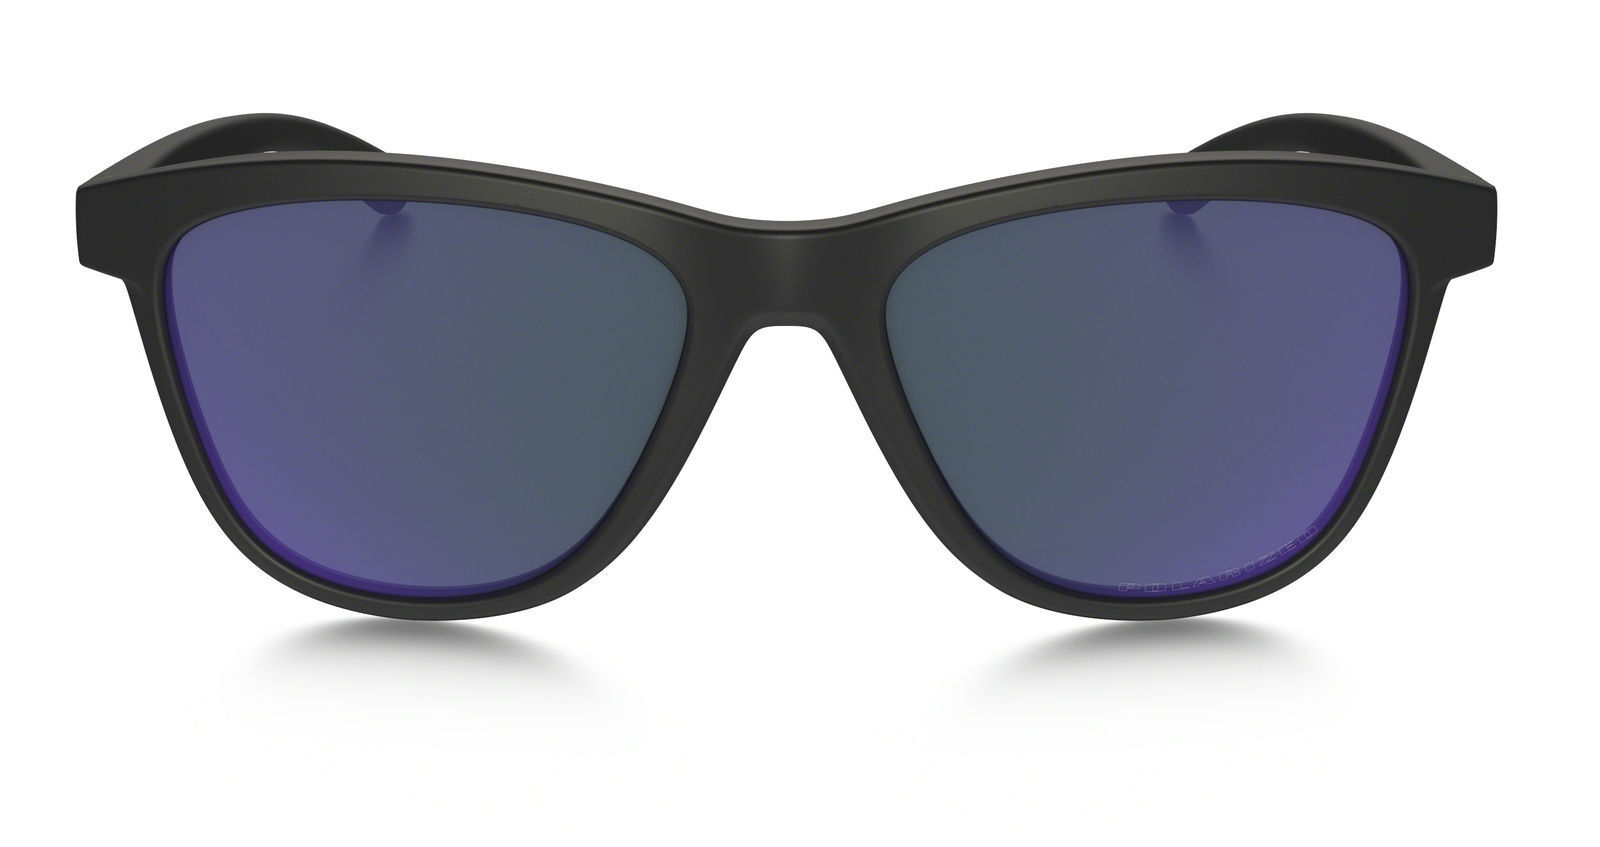 e5b837b974 Oakley Moonlighter Polarized Sunglasses - Black VIolet Iridium ...